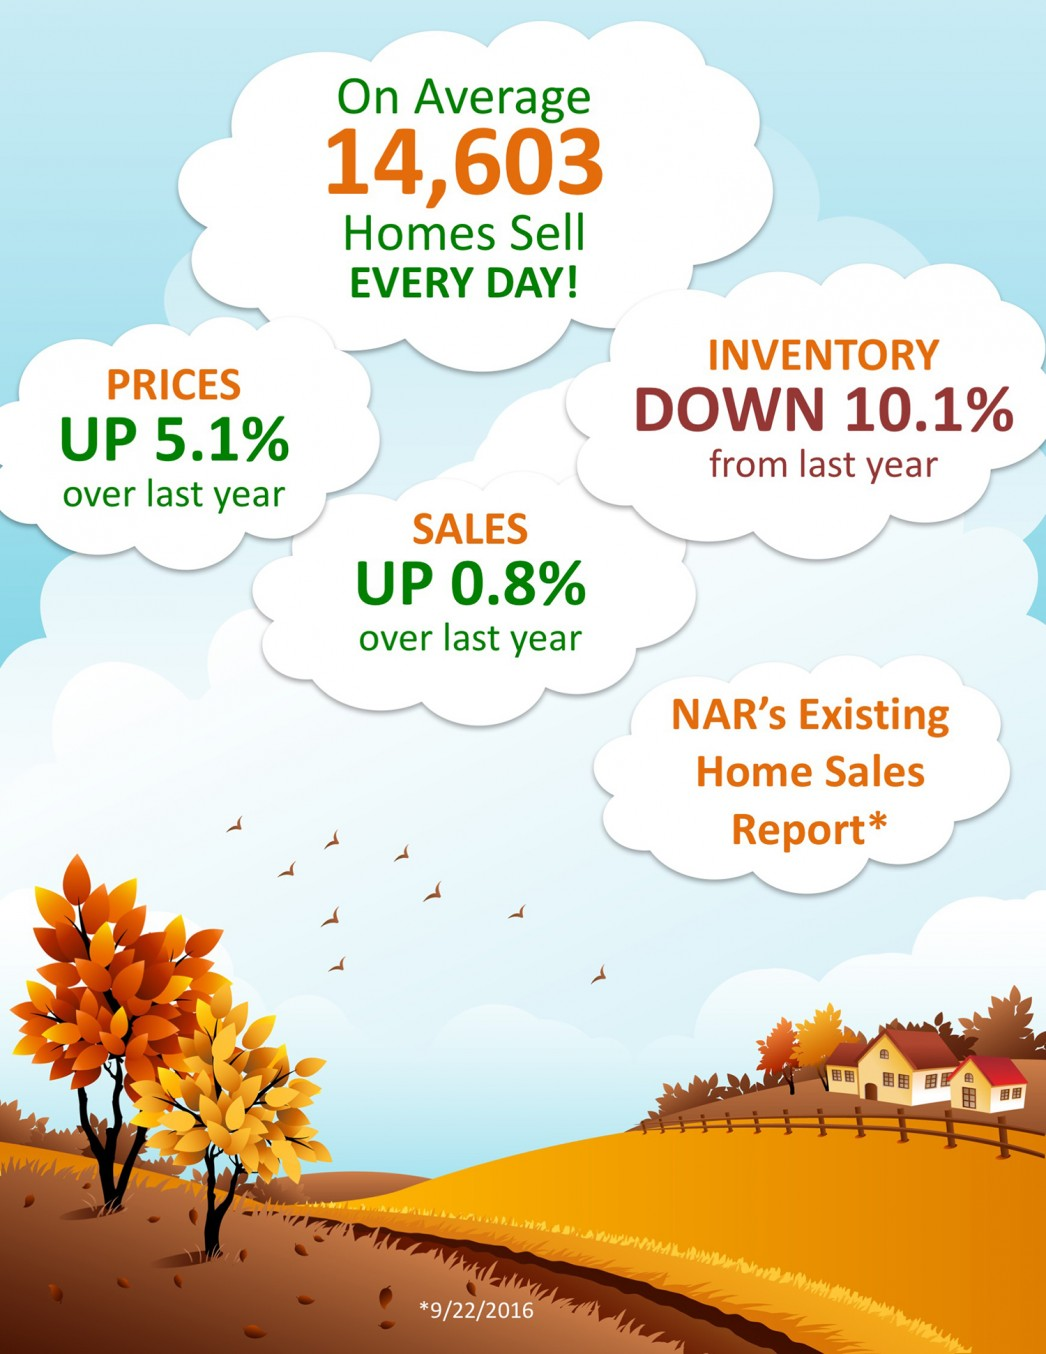 Lack of Existing Home Sales Inventory Impacting Sales [INFOGRAPHIC] | MyKCM